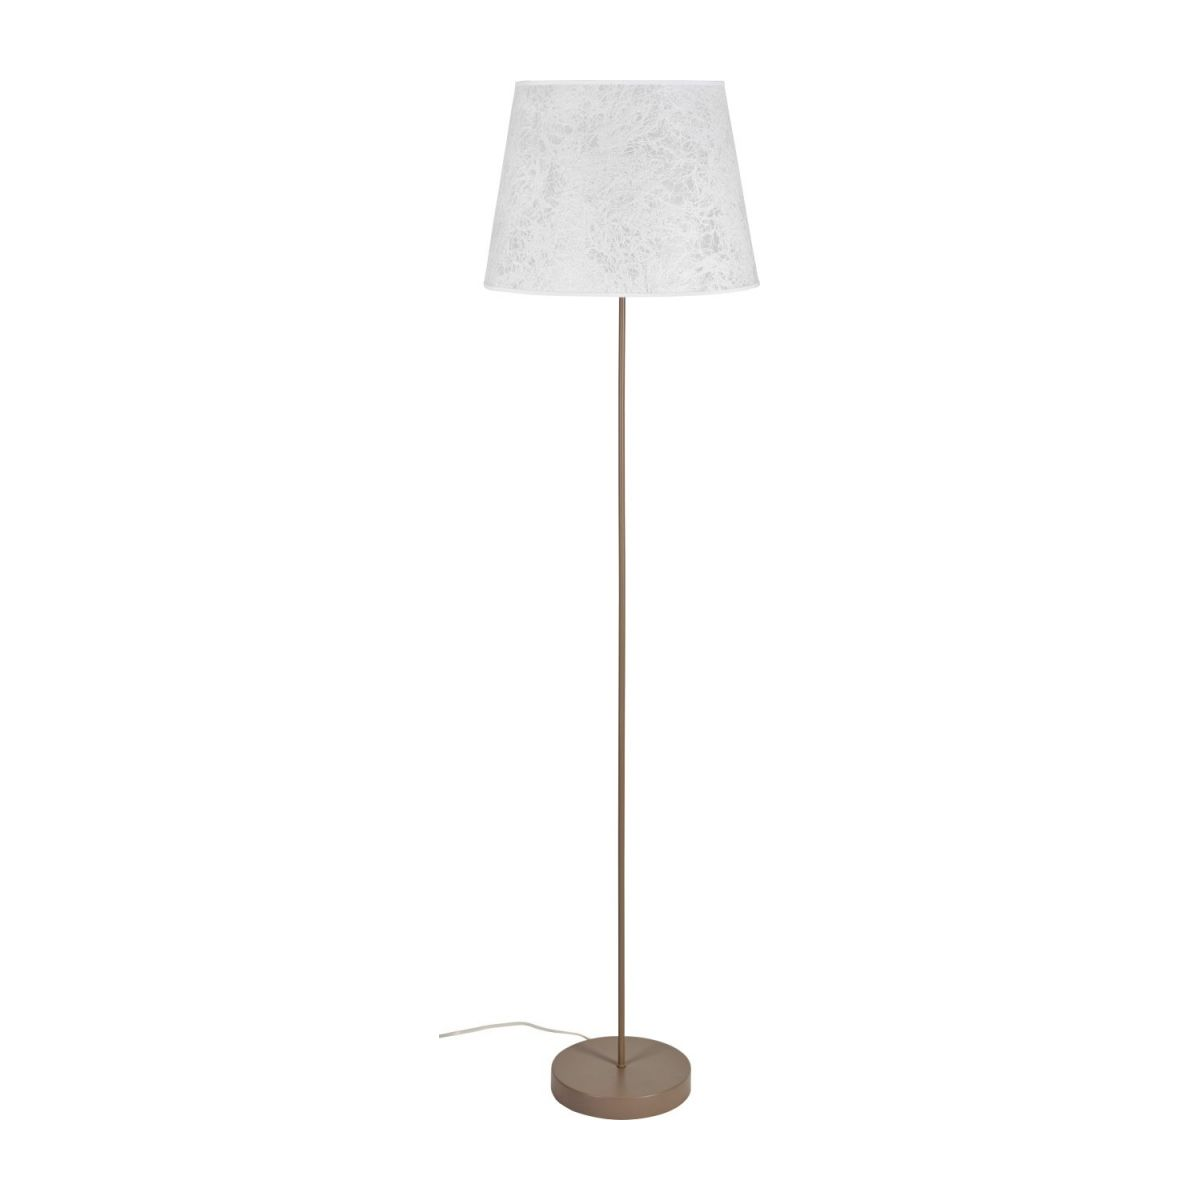 Floor lamp base made of metal, grey n°2